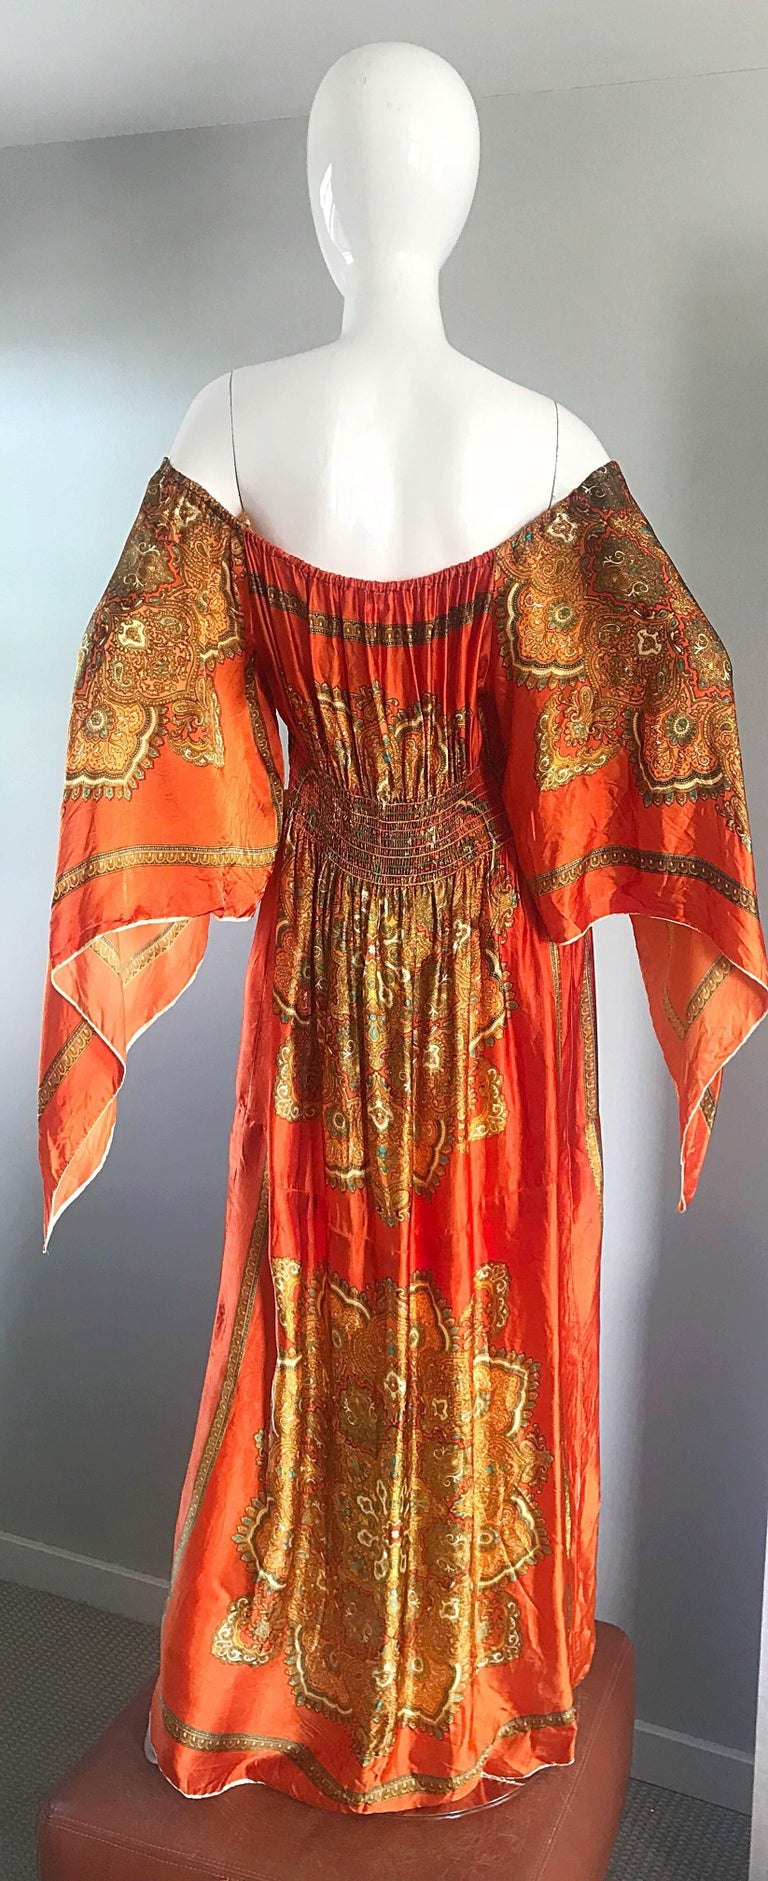 Amazing 1970s Off - Shoulder Boho Ethnic Print Silky Vintage 70s Maxi Dress 4